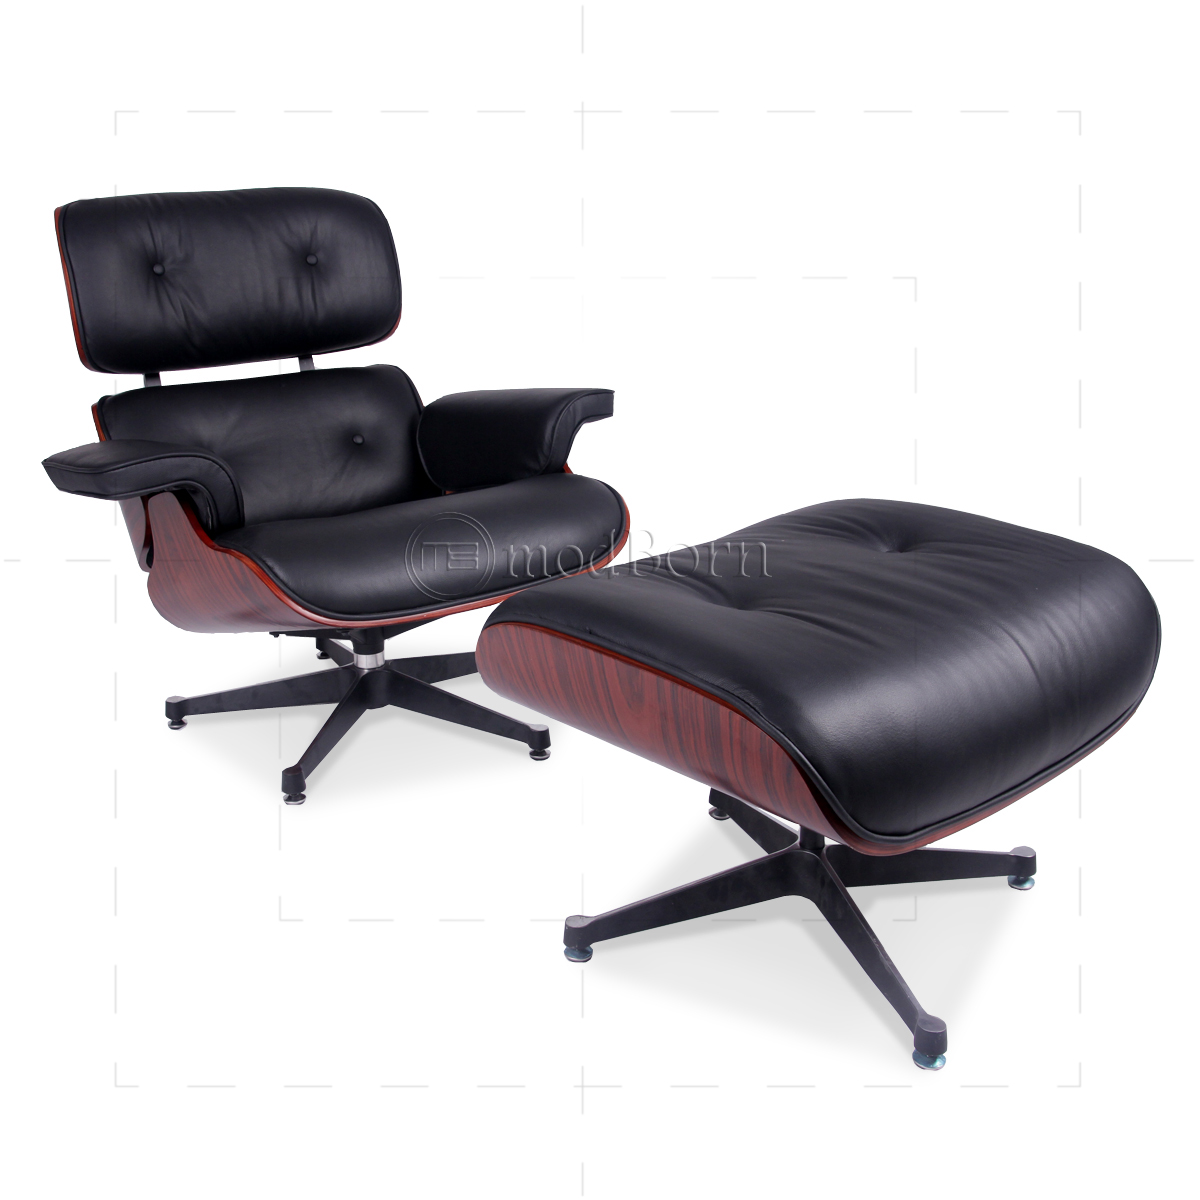 eames style lounge chair and ottoman black leather palisander rosewood taller replica. Black Bedroom Furniture Sets. Home Design Ideas